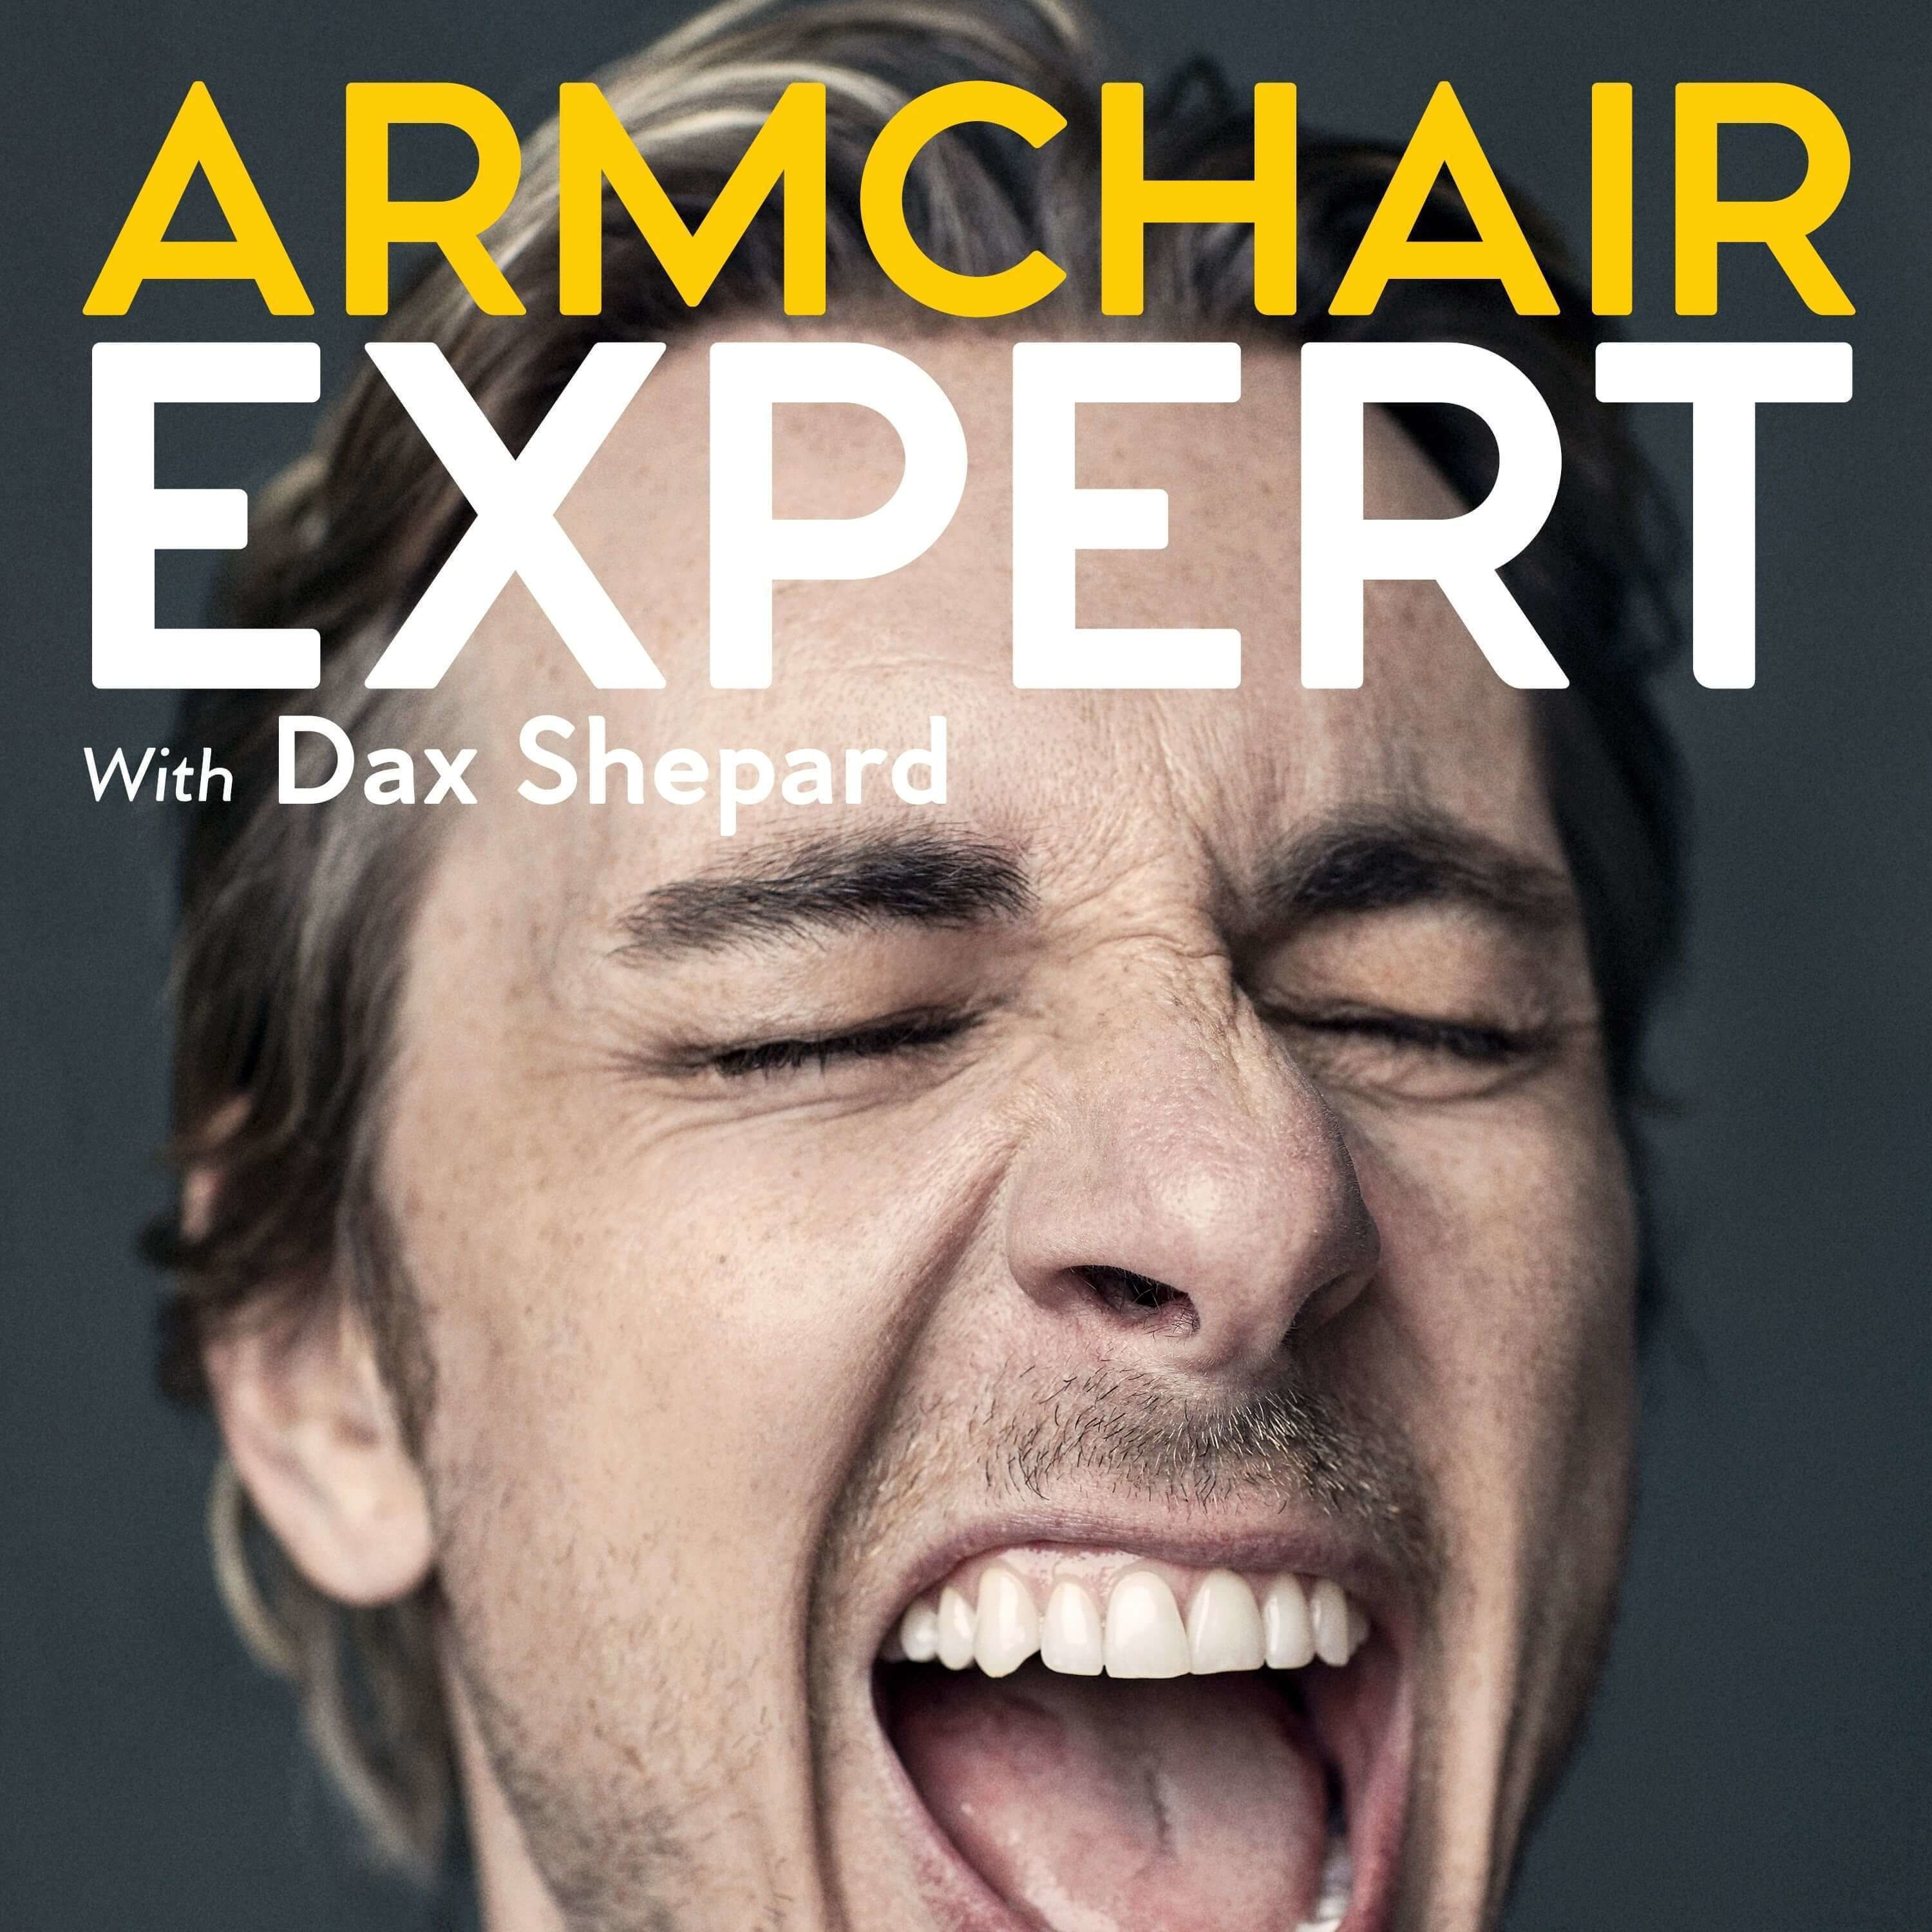 Armchair Expert with Dax Shepard